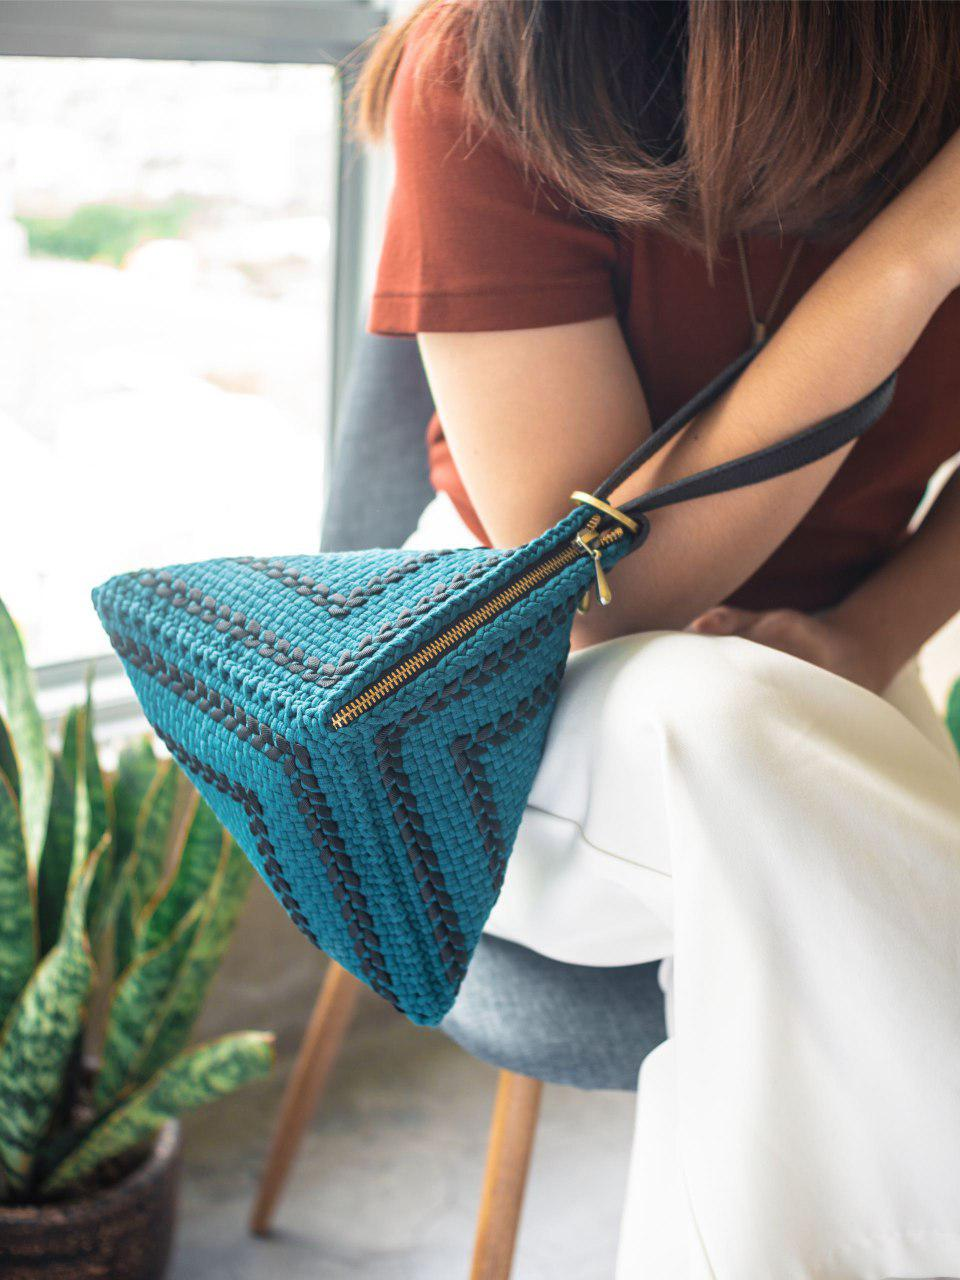 Pusô Pouch in Teal for Salty Seas and Seastainable Co.